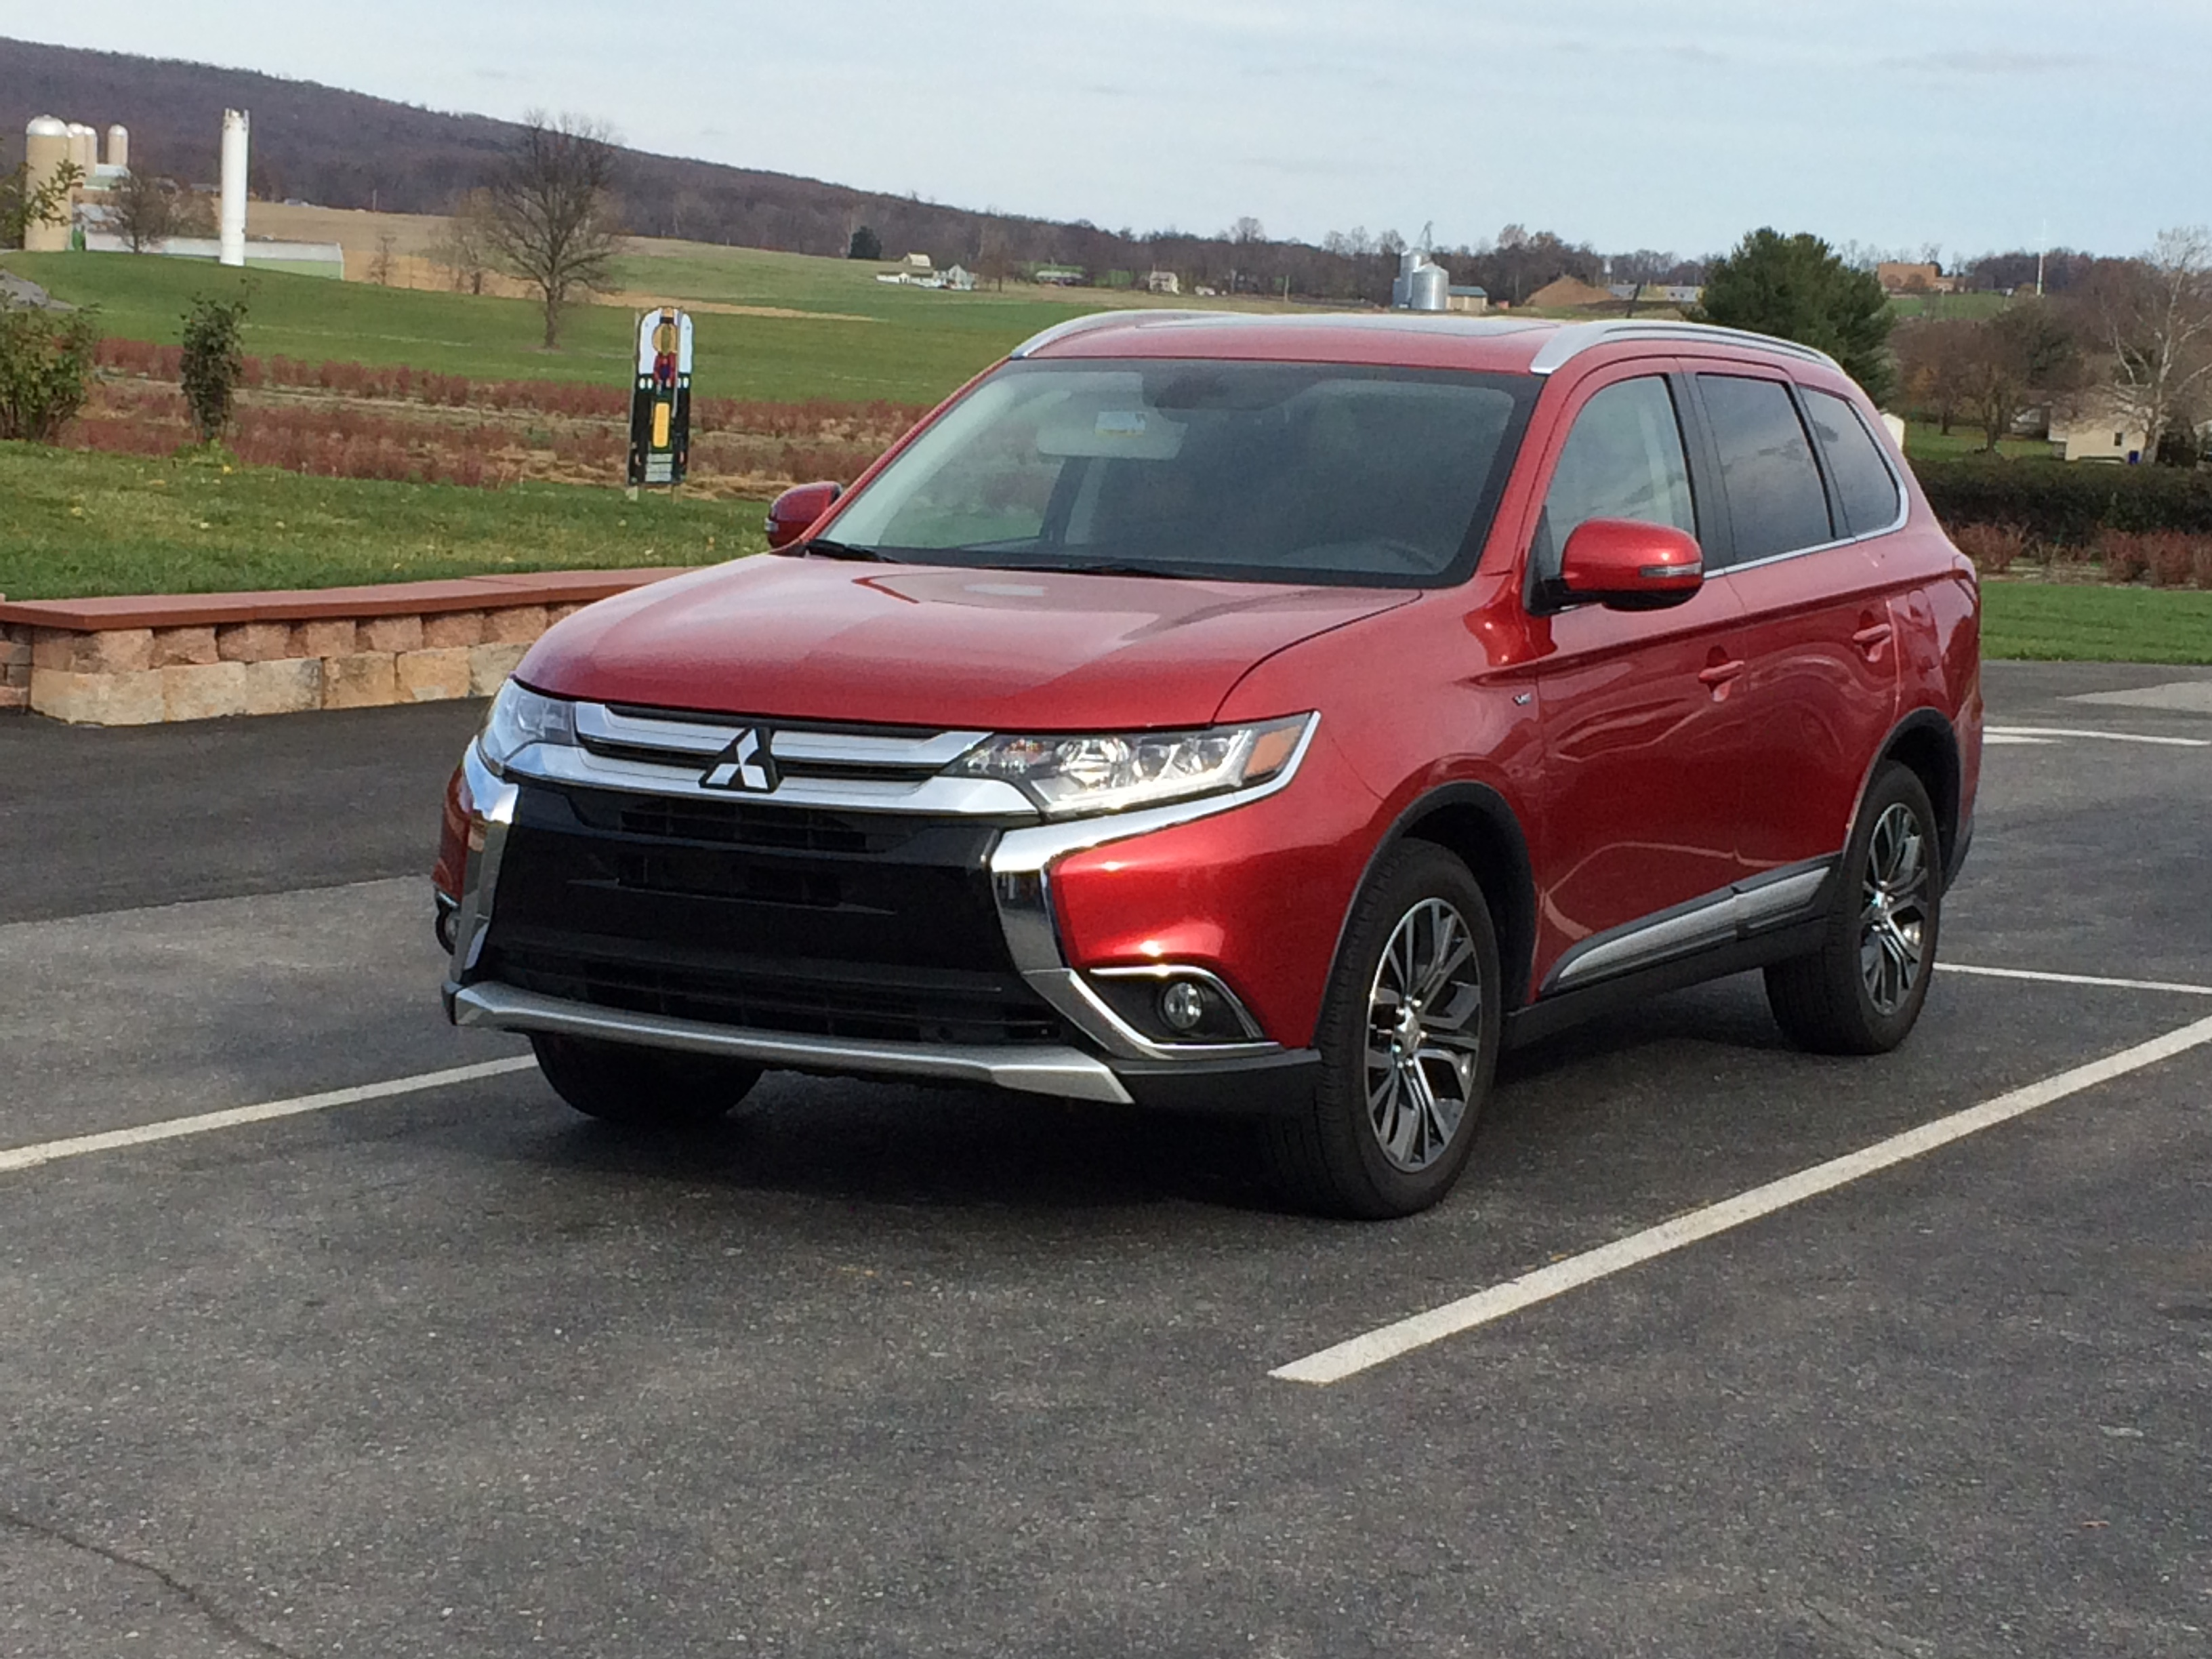 Marked improvement for redesigned 2016 Mitsubishi Outlander GT